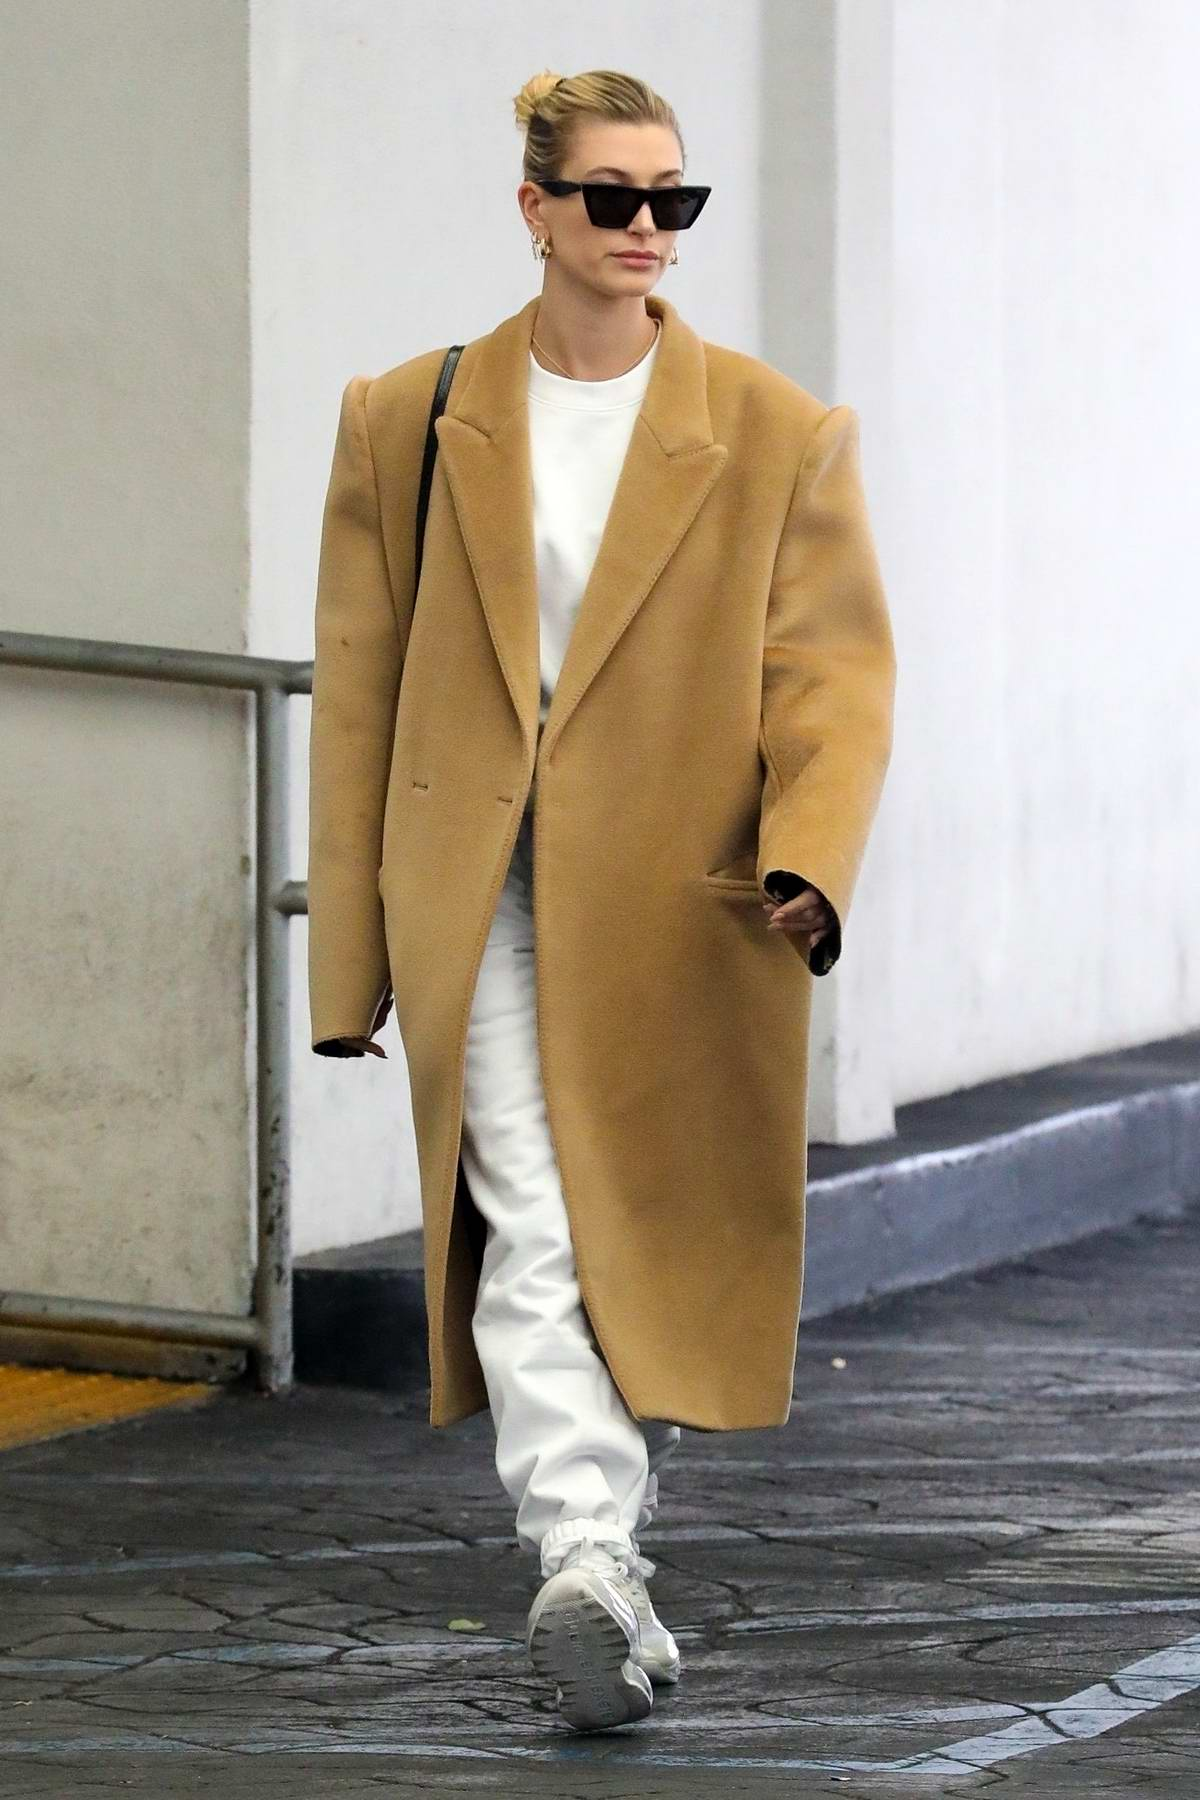 Hailey Bieber wears an oversized beige coat as she makes a visit to a doctor's office in Beverly Hills, Los Angeles